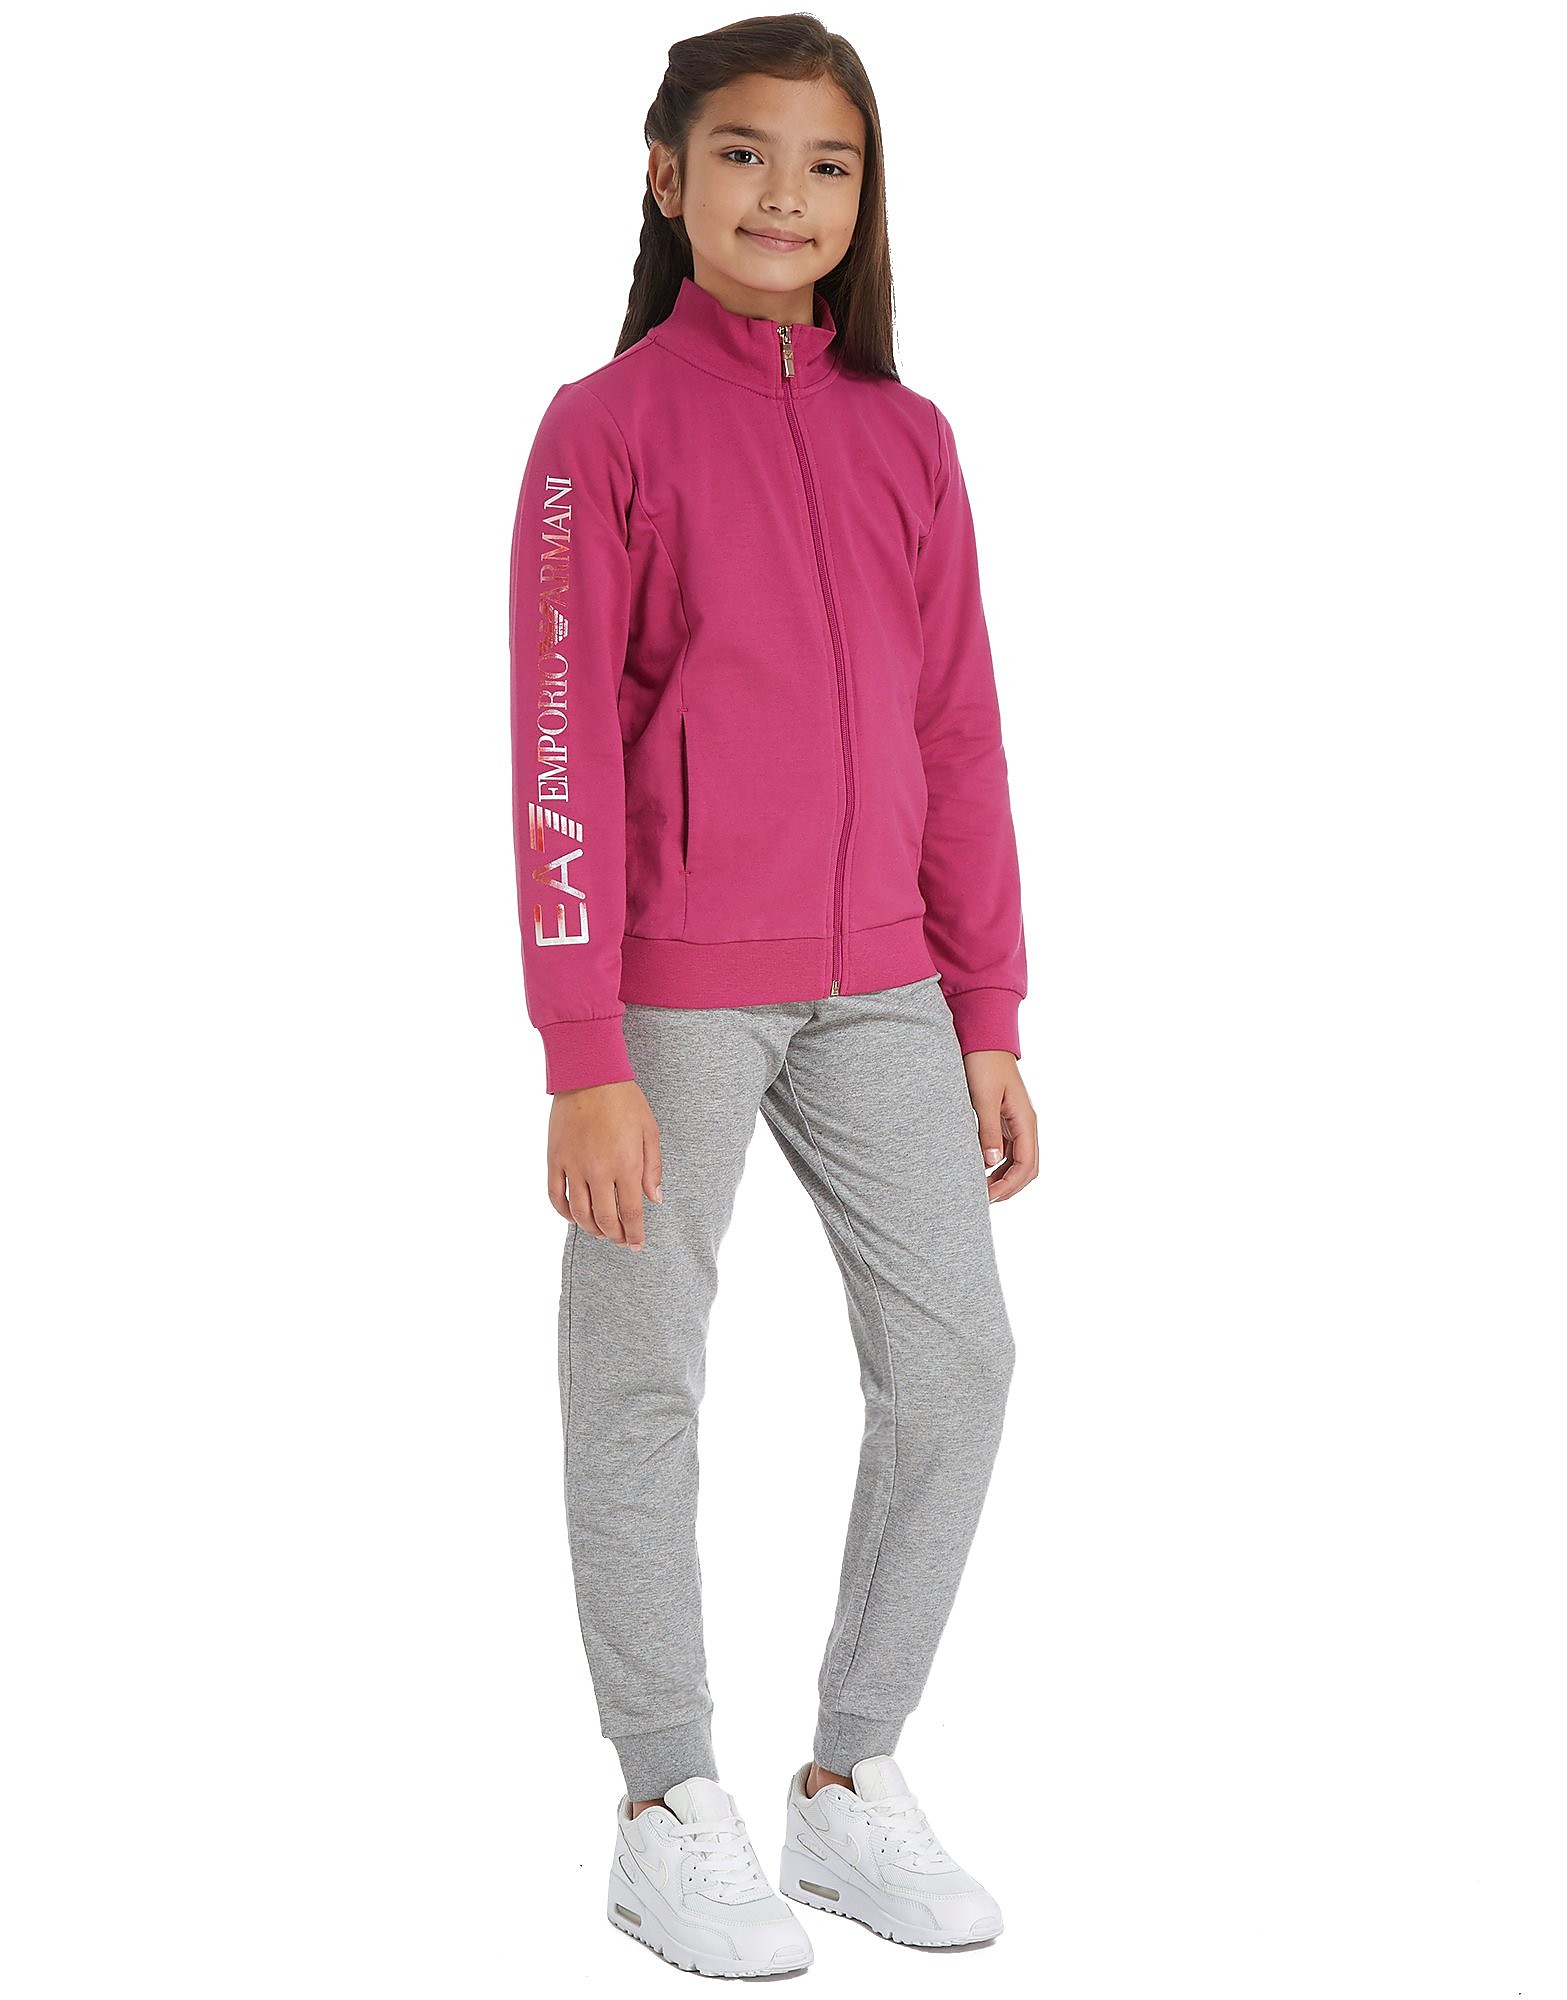 Emporio Armani EA7 Girls' Fun Tracksuit Kinderen